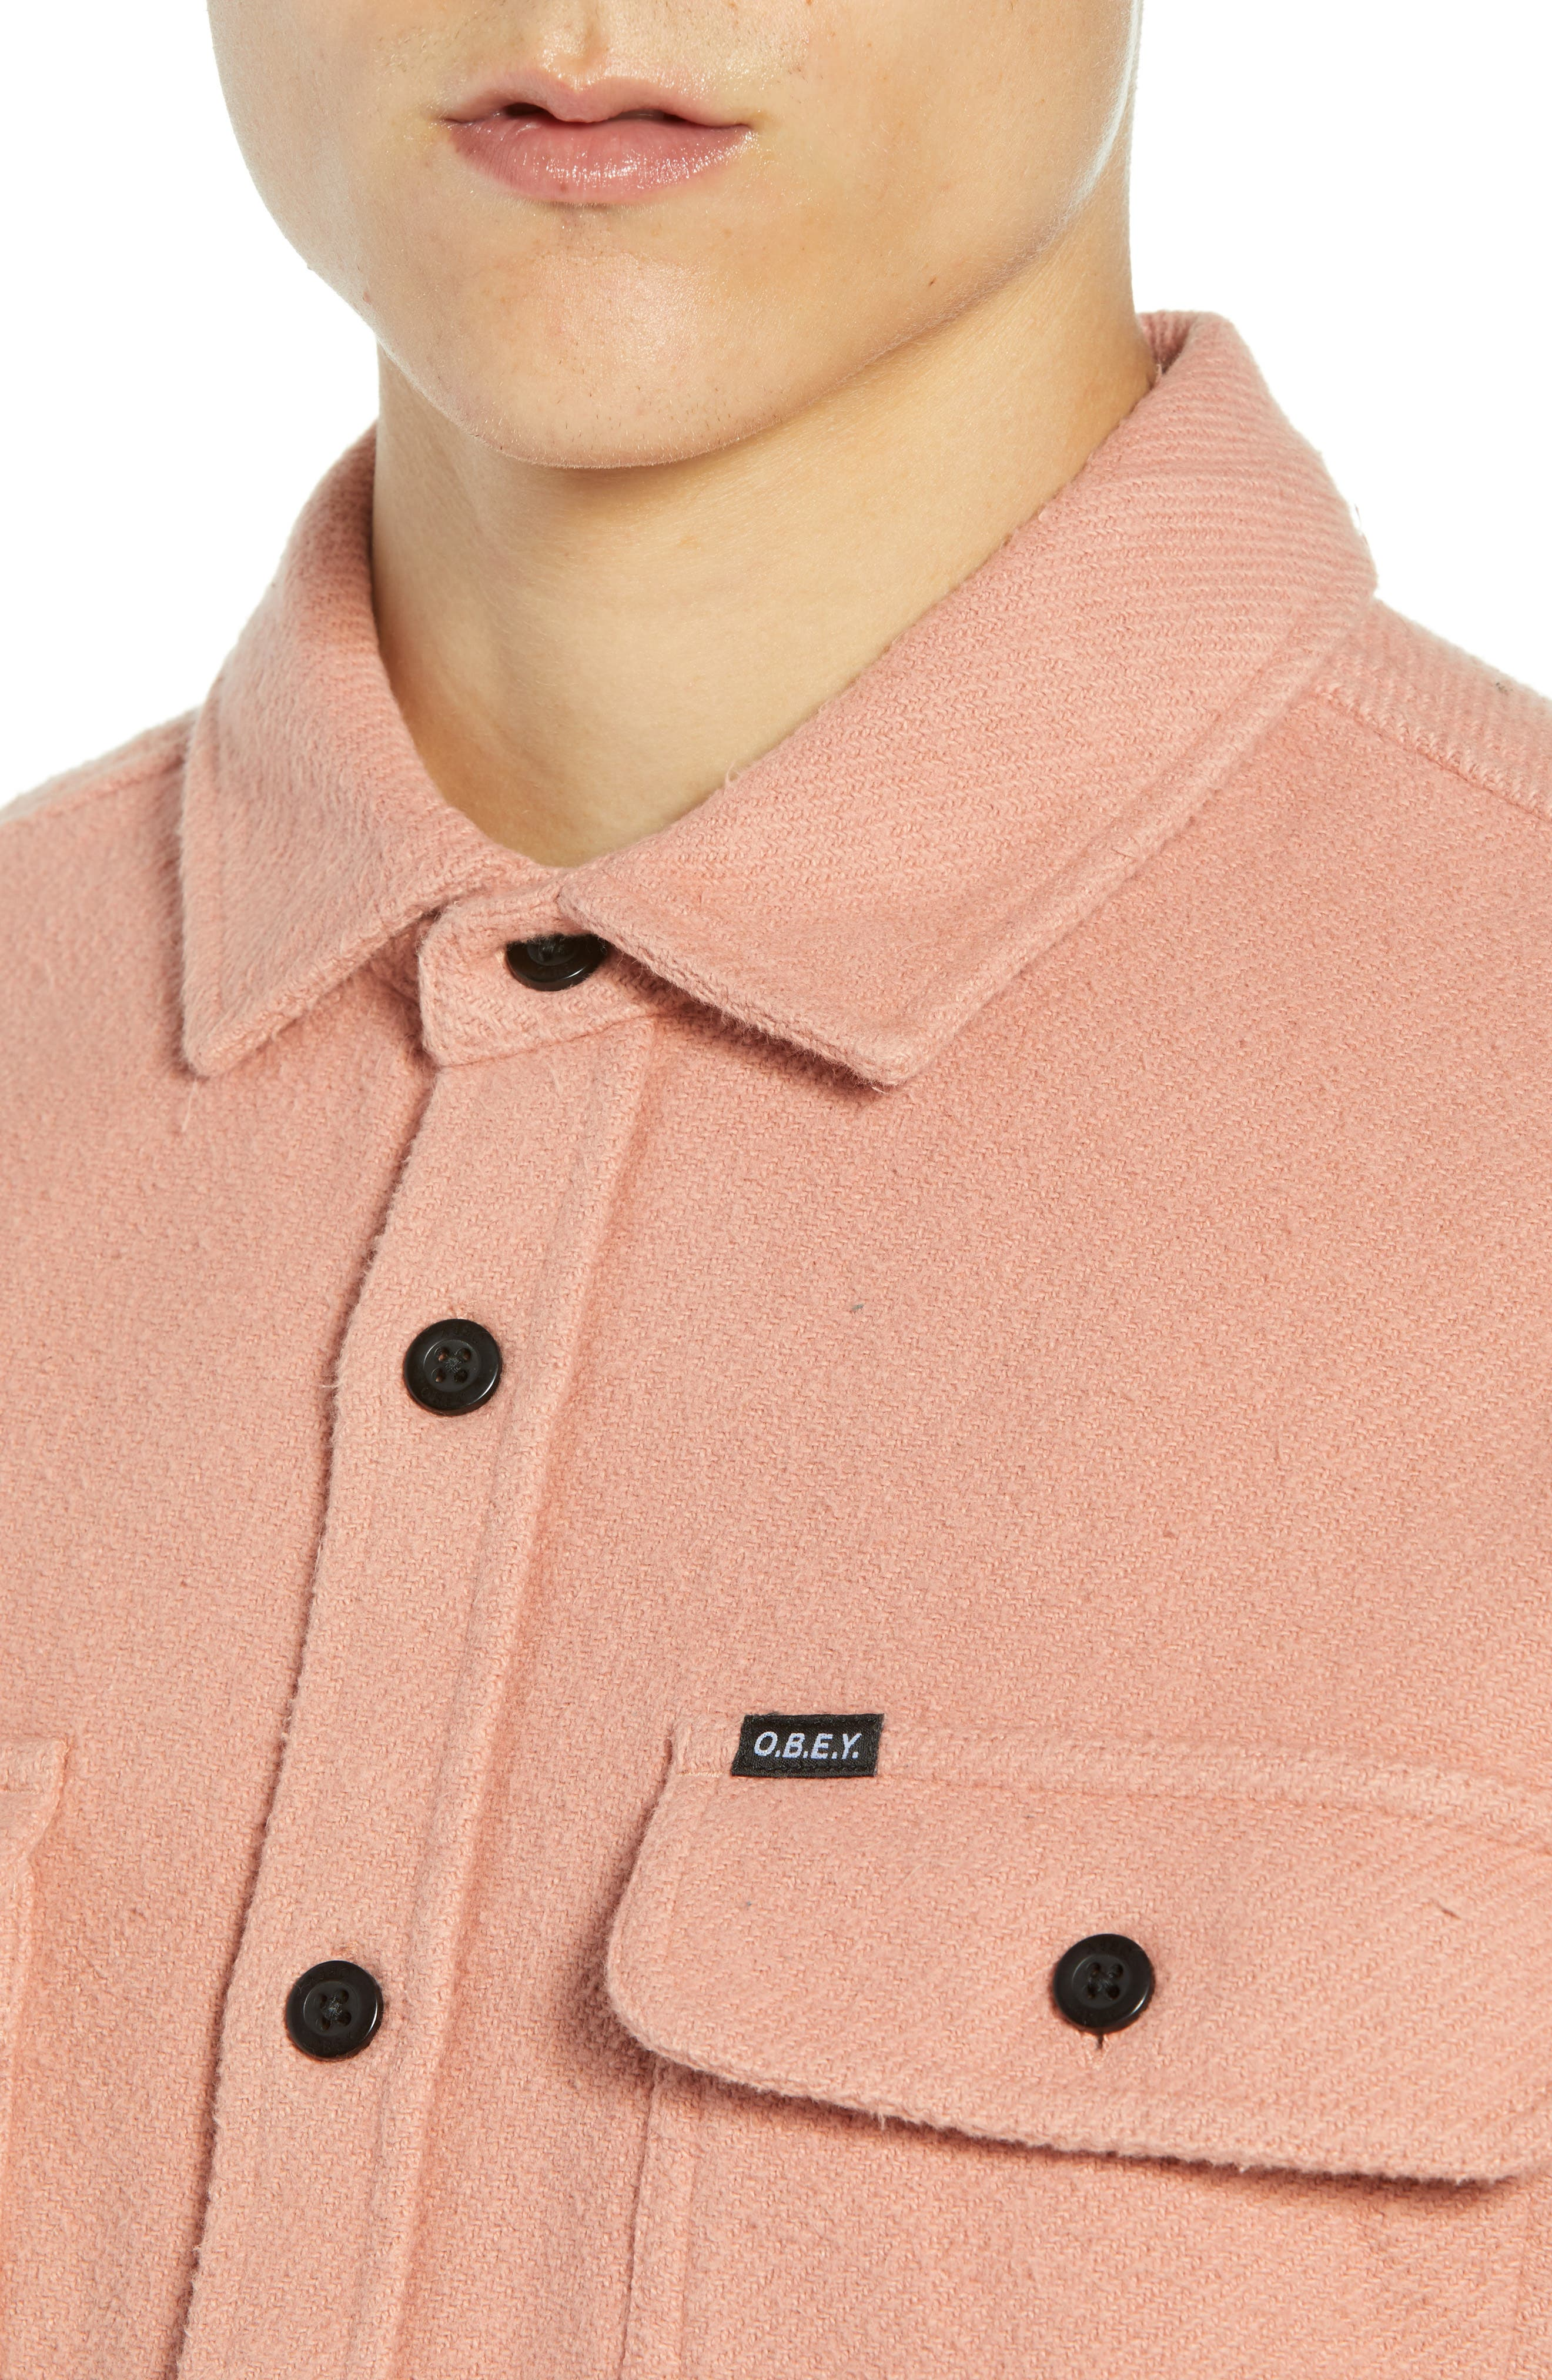 Outpost Flannel Shirt Jacket,                             Alternate thumbnail 2, color,                             ROSE